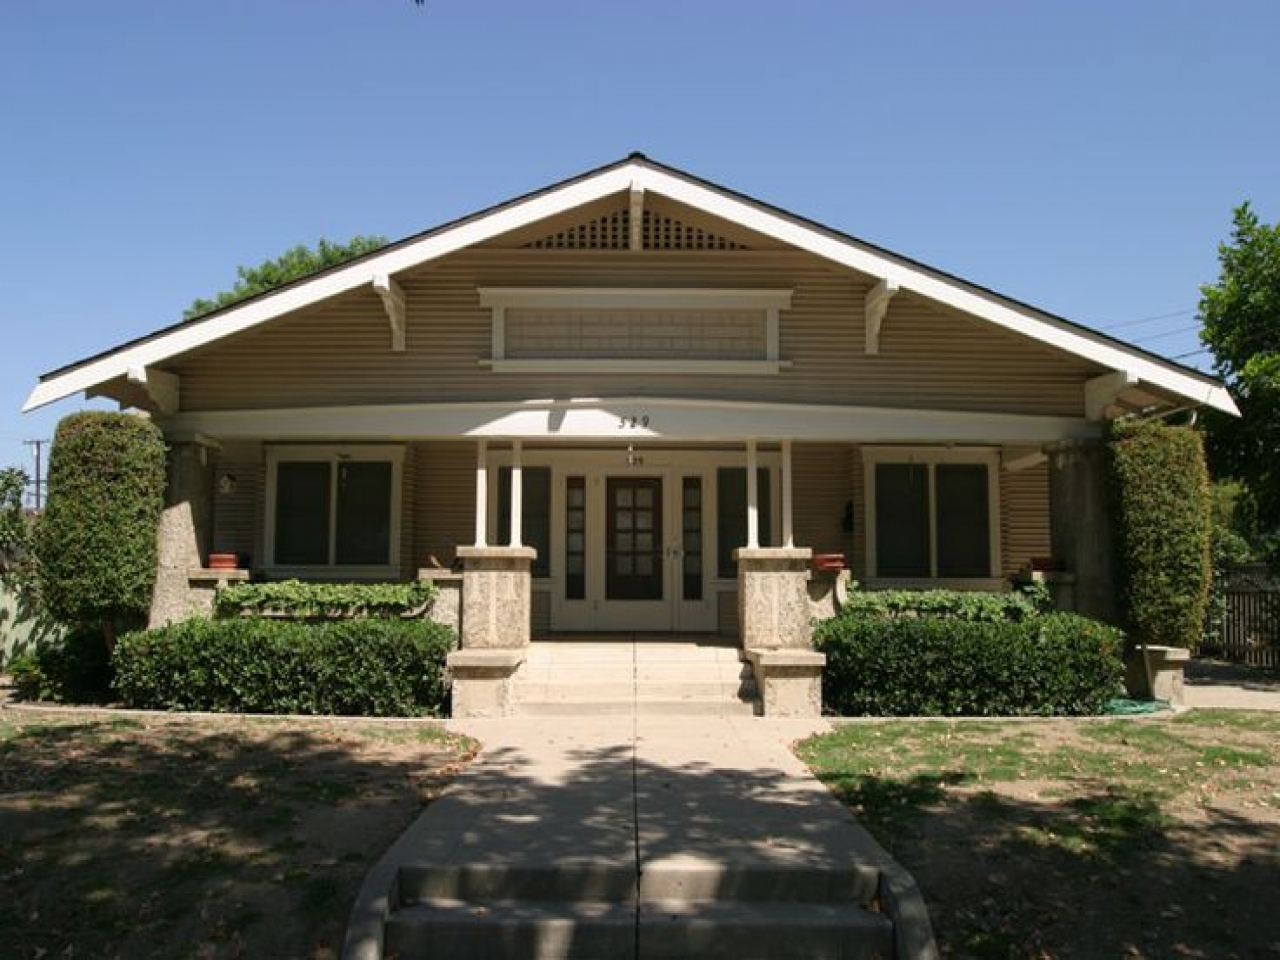 Craftsman bungalow style home interior bungalow style for Craftsman bungalow architecture